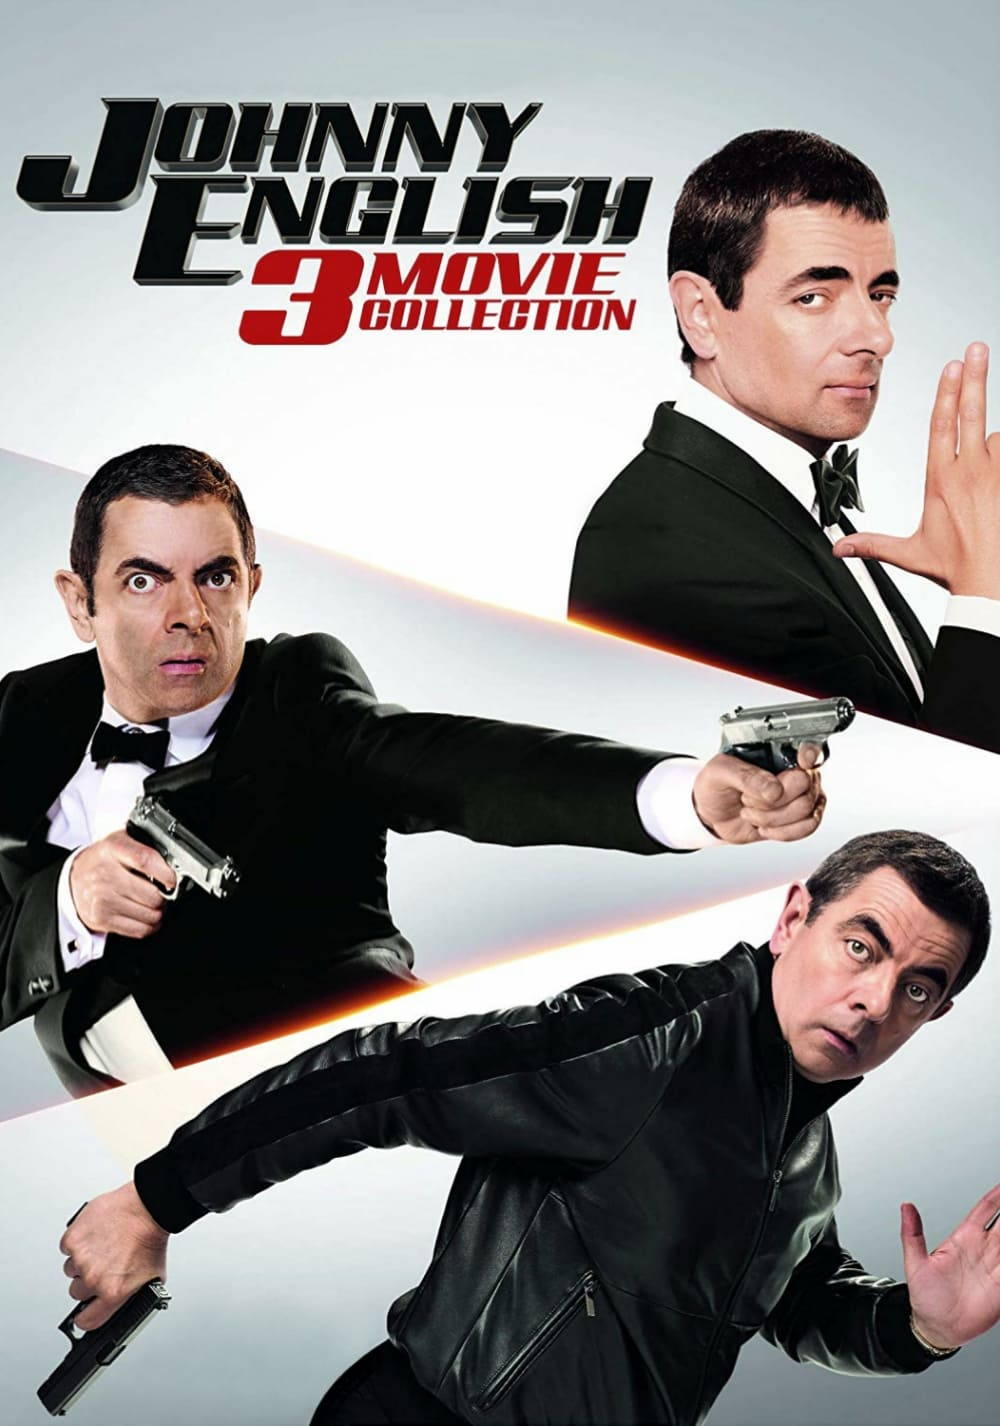 Johnny English Collection (2003-2018) BluRay 1080p [14 GB] 720p [2.85 GB] 480p [1.45 GB] [Hindi DD 5.1 + Englsih DD 5.1] | G-Drive